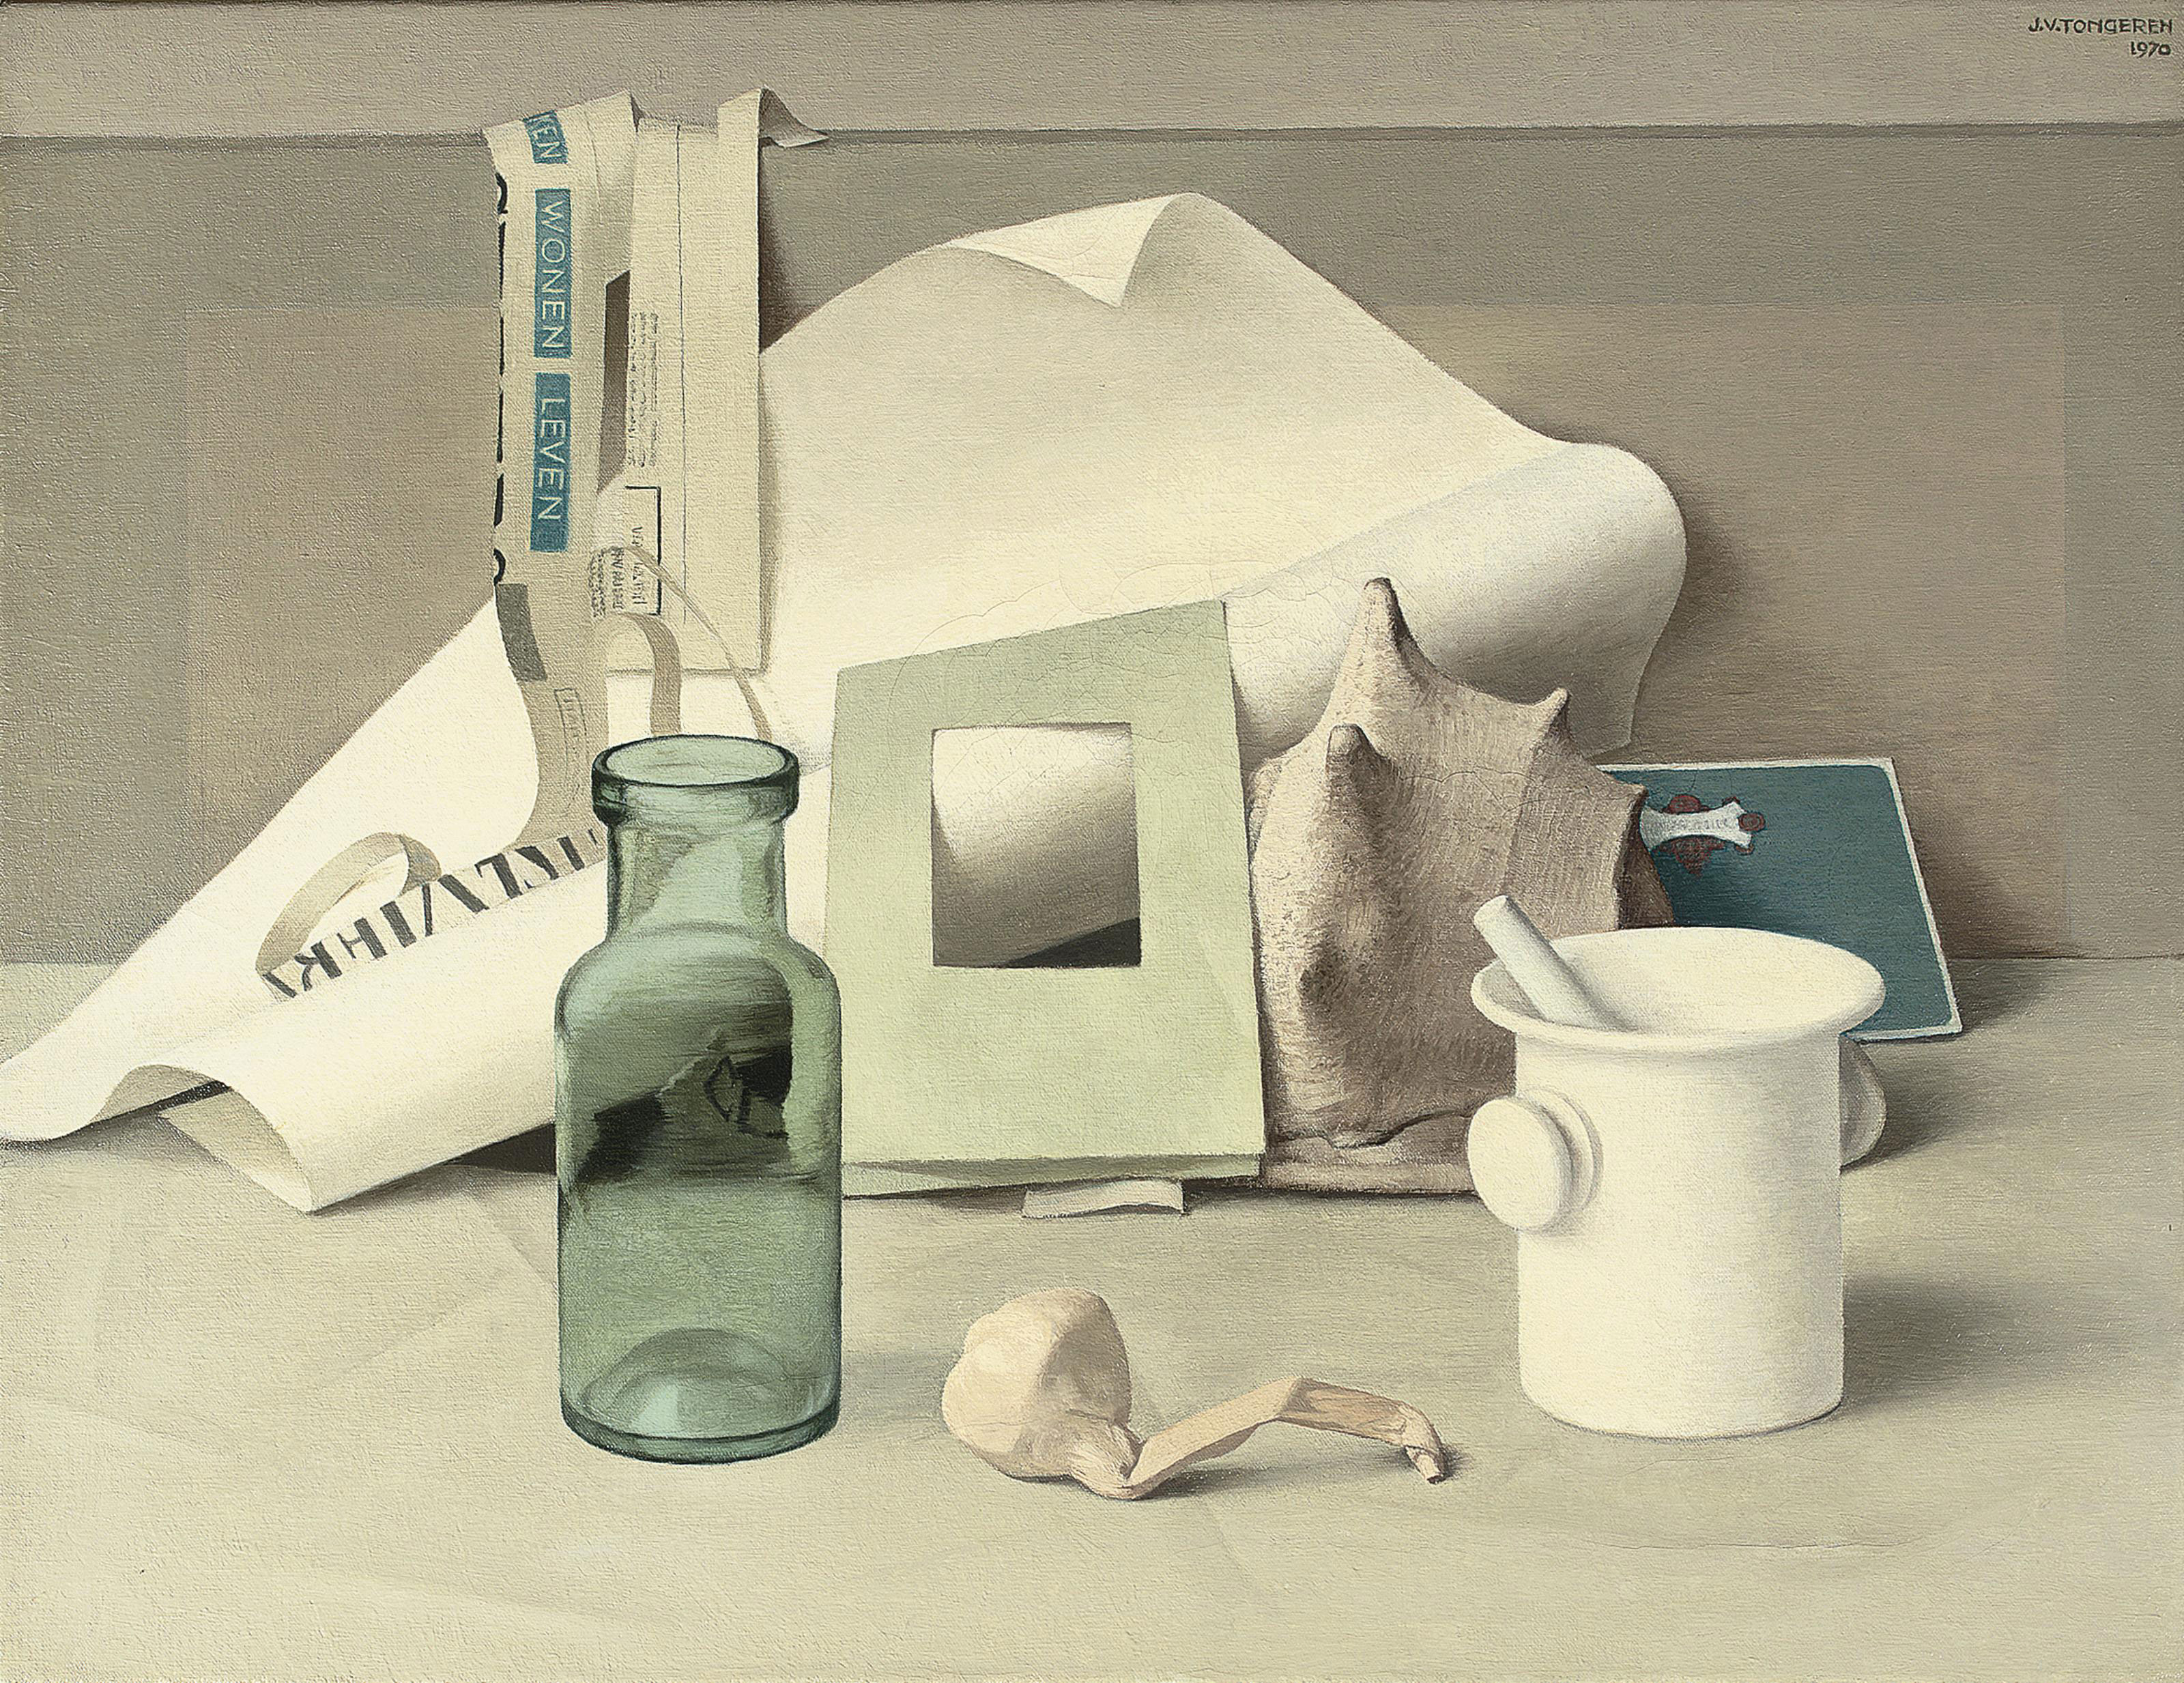 Still life with a mortar, garlic and a bottle